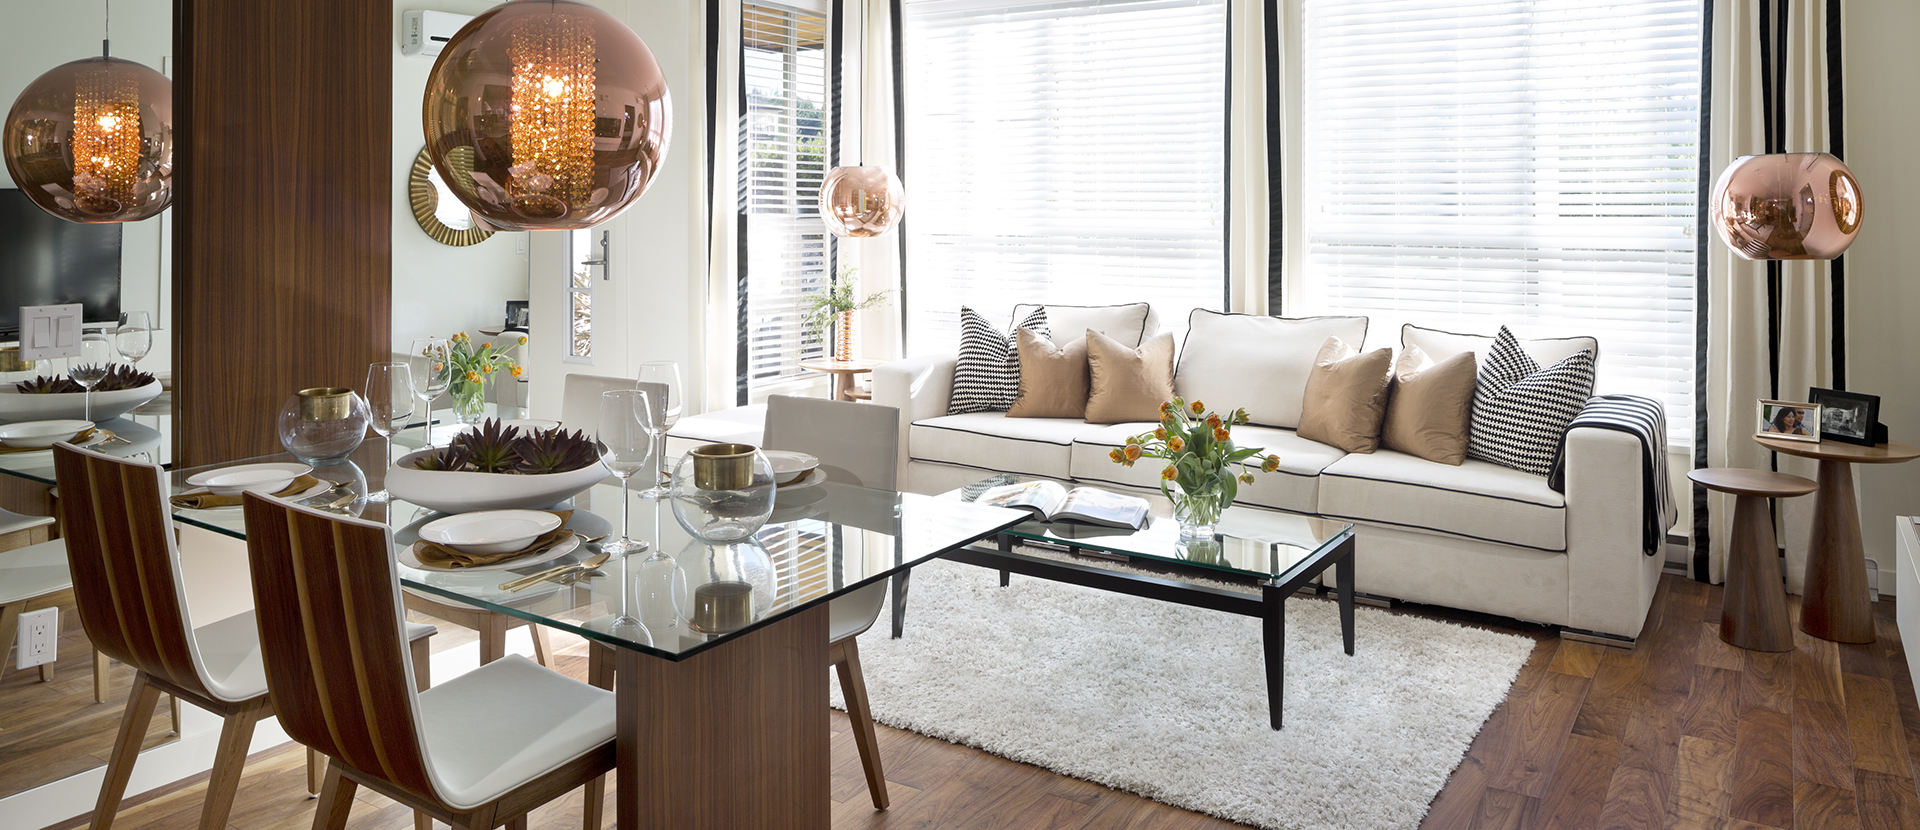 An elegant living room layout at the Prodigy condos